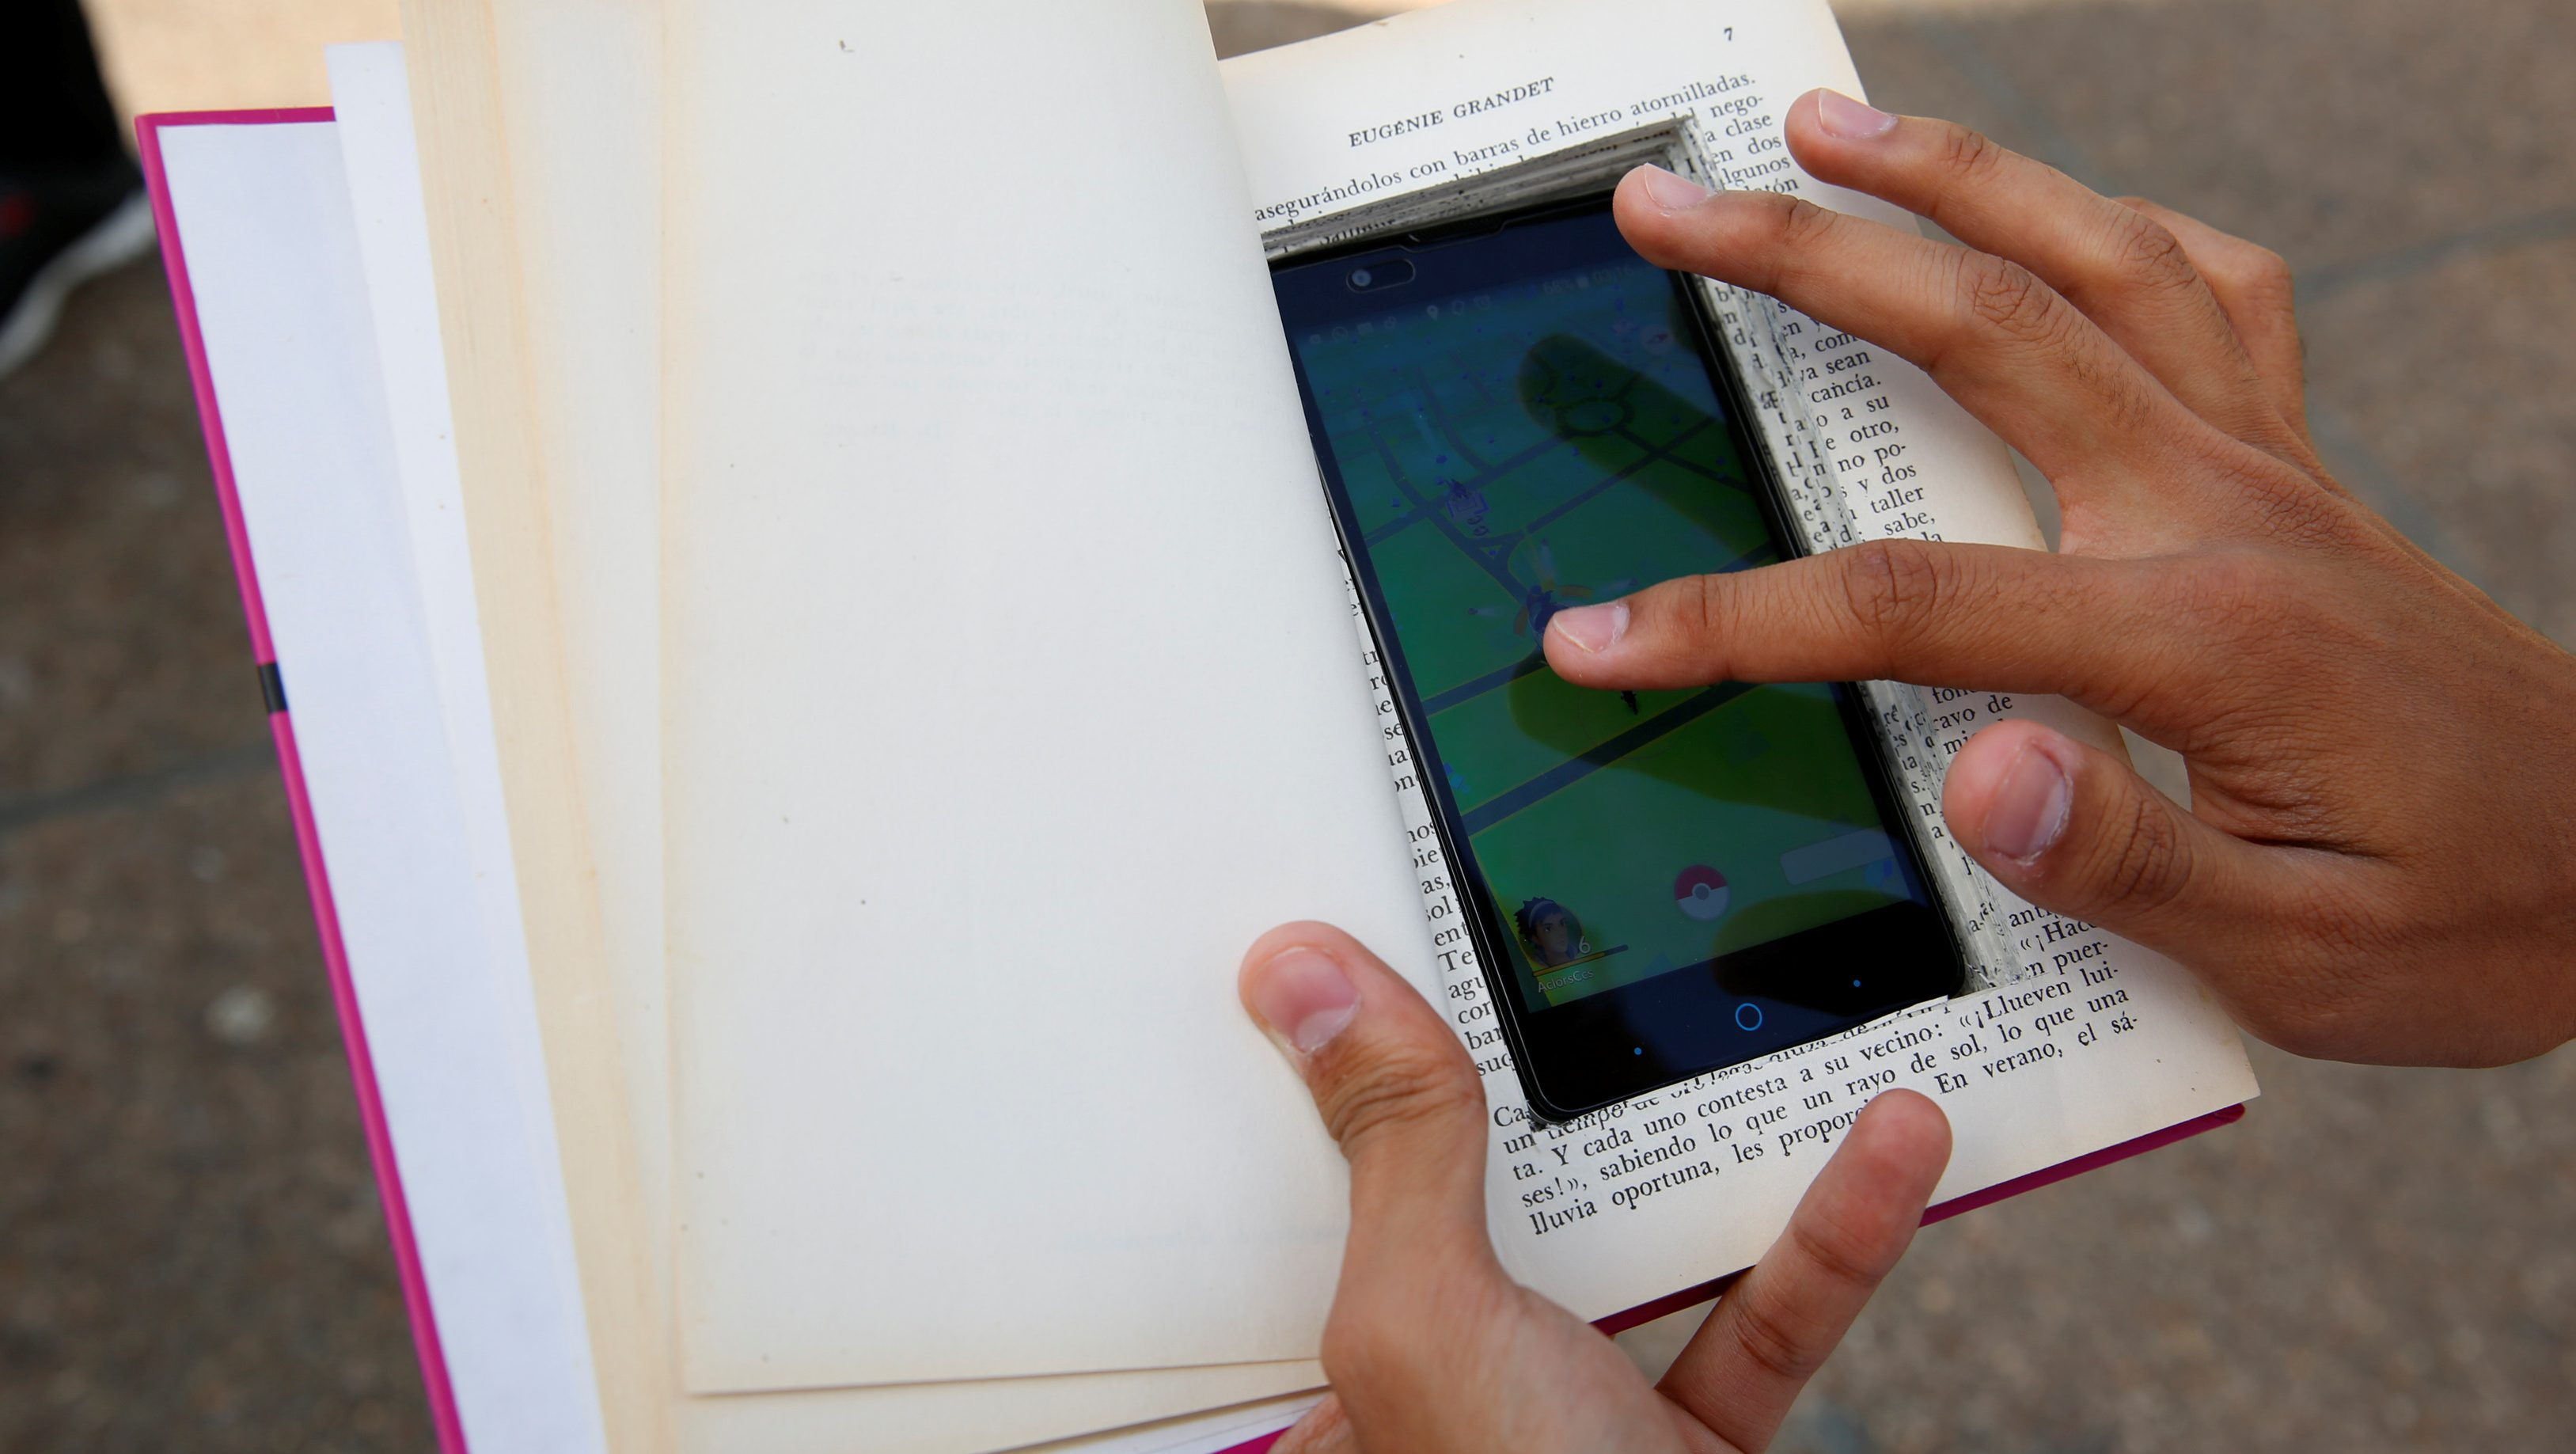 """Carlos Reina plays the augmented reality mobile game """"Pokemon Go"""" with his cell phone camouflaged in a book due to concerns about theft in Caracas, Venezuela August 9, 2016. REUTERS/Carlos Garcia Rawlins - S1BETUQWWMAA"""